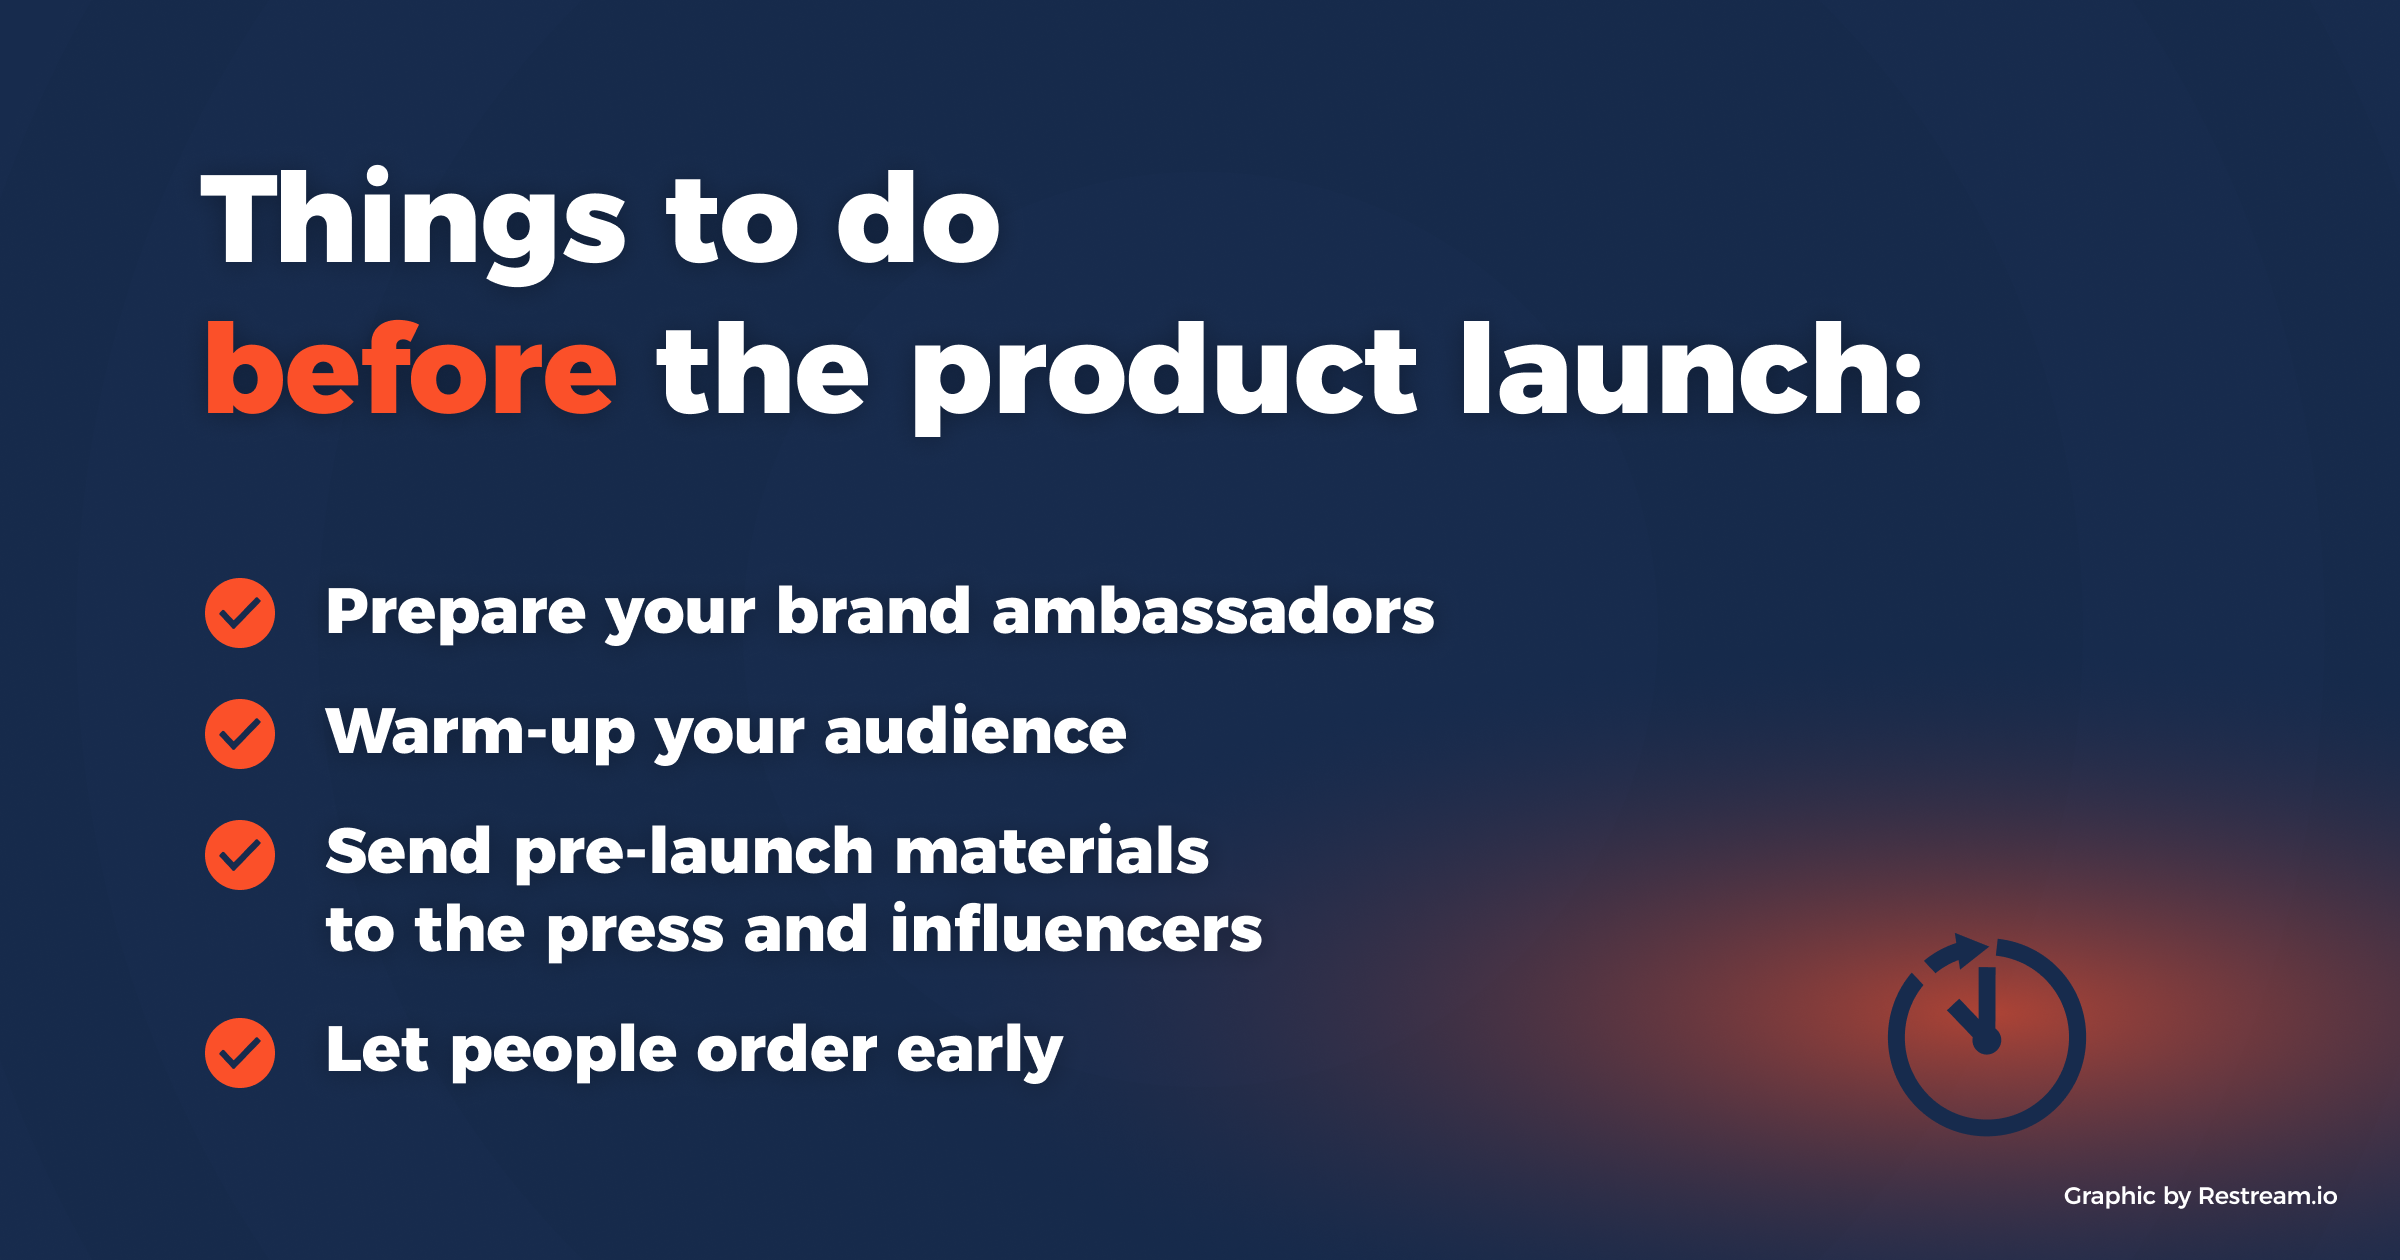 Things to do before the product launch